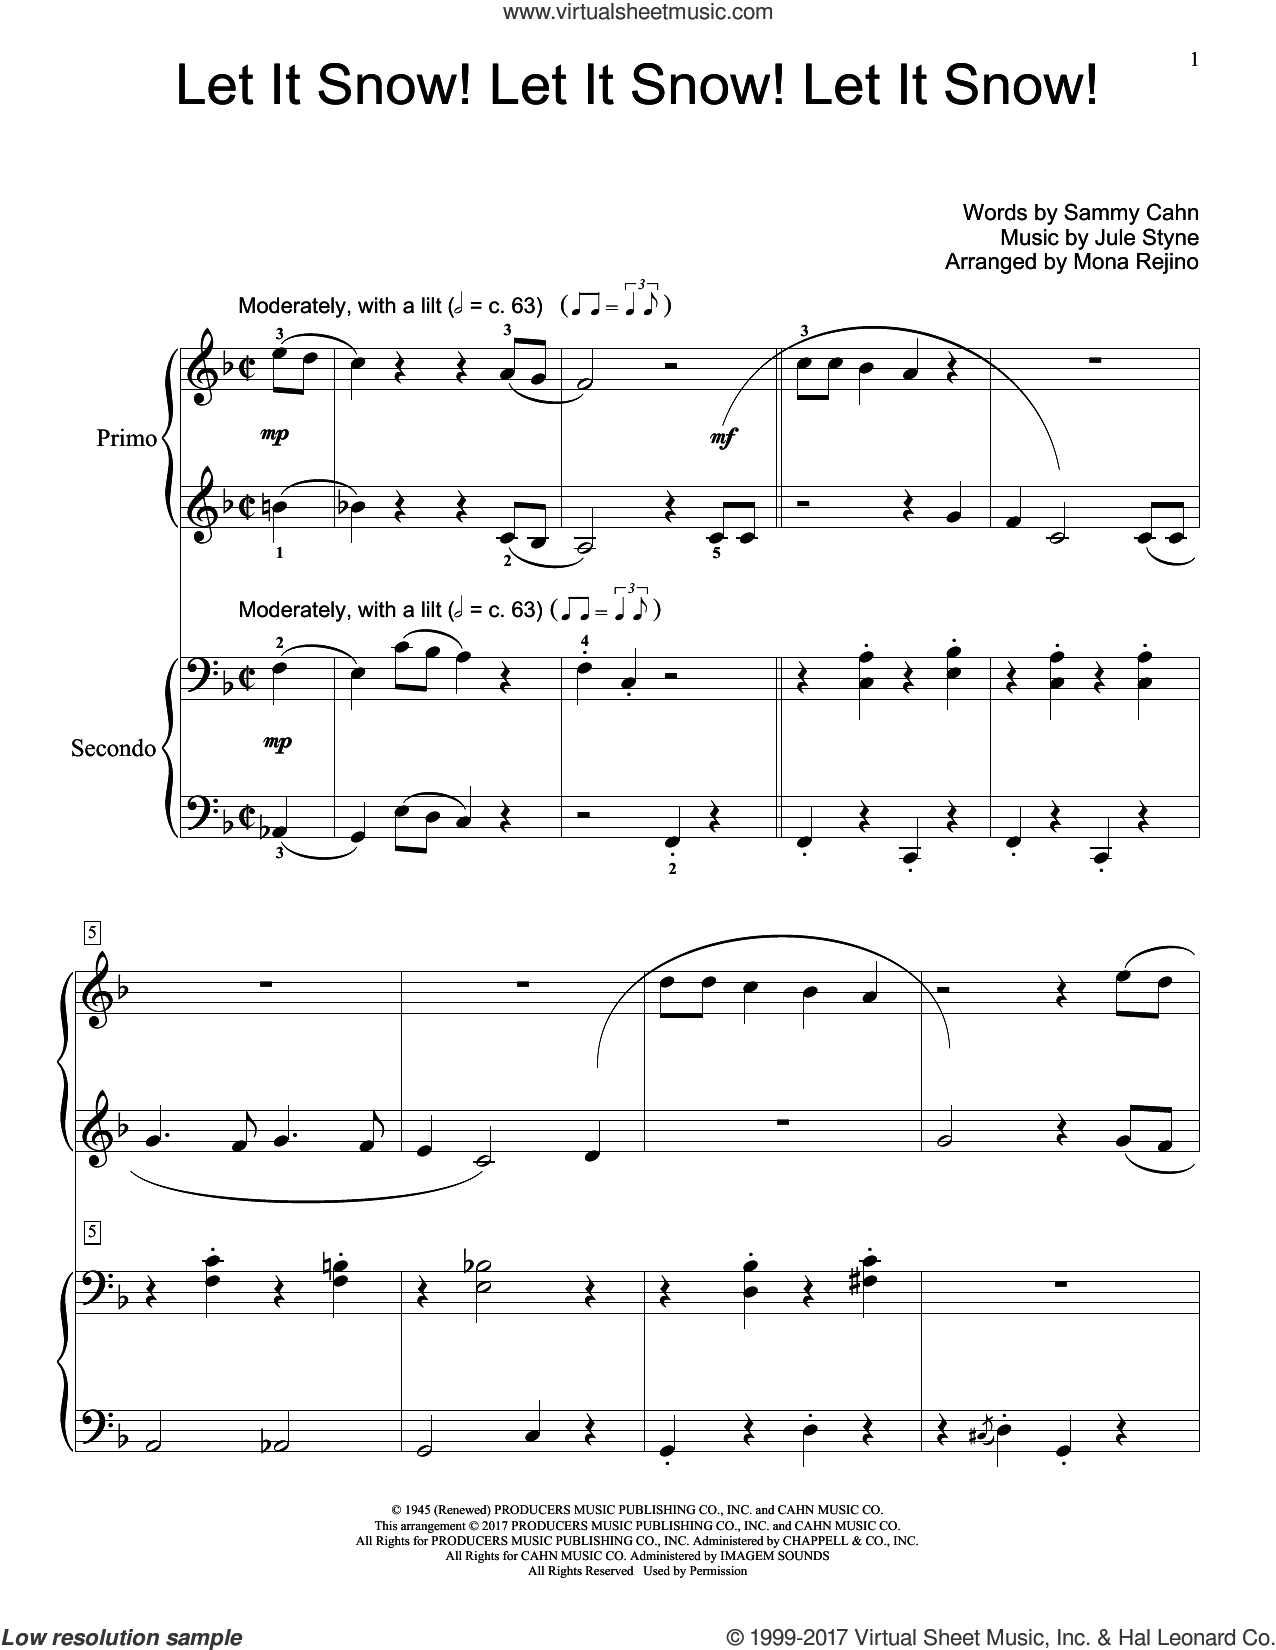 Let It Snow! Let It Snow! Let It Snow! sheet music for piano four hands by Sammy Cahn and Jule Styne, intermediate skill level